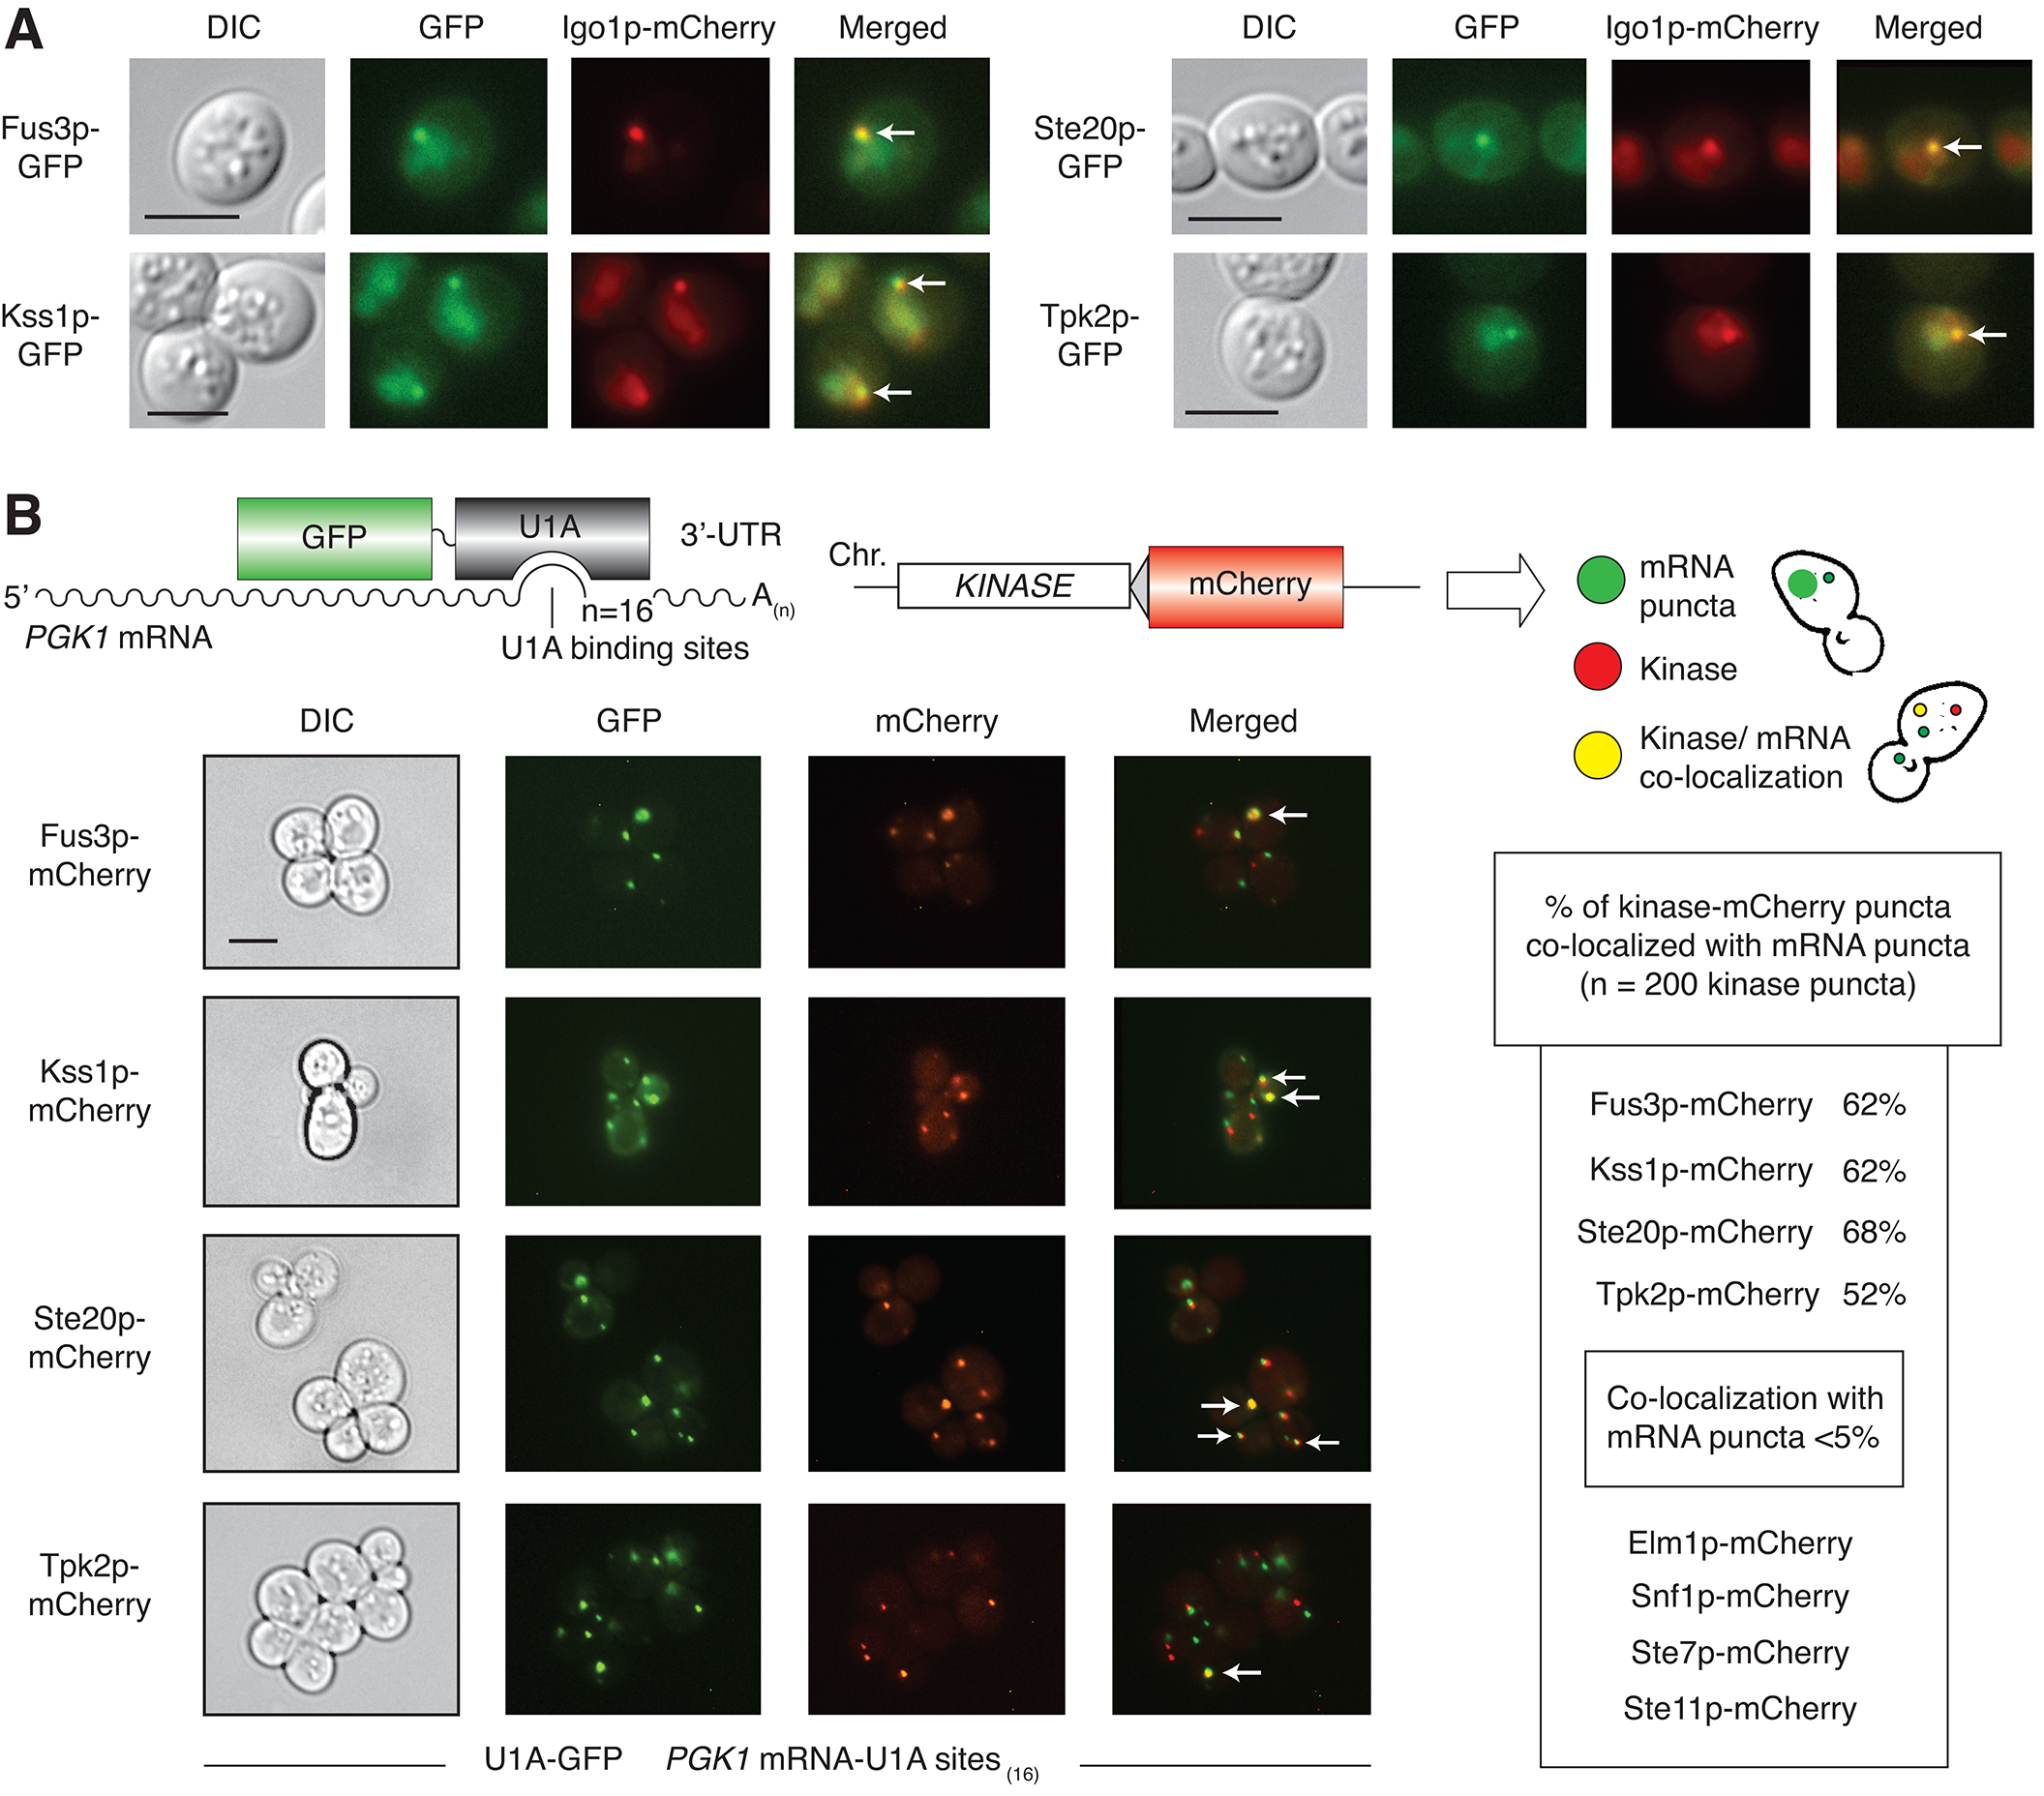 Co-localization of Fus3p, Kss1p, Ste20p, and Tpk2p with mRNPs.